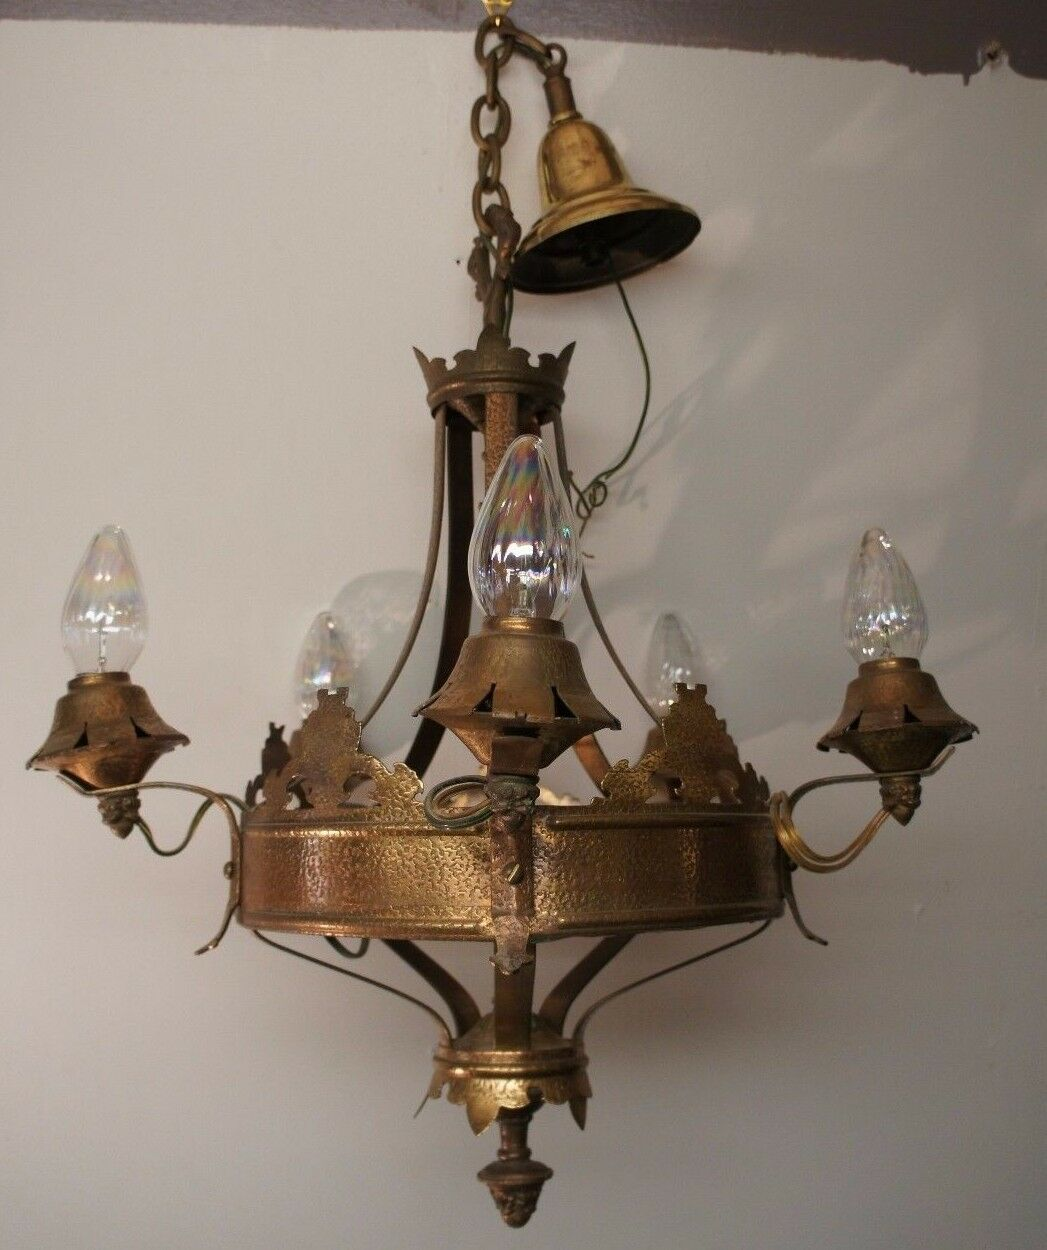 Antique Renaissance Spanish Revival Hammered Copper 4 Light Chandelier Fixture